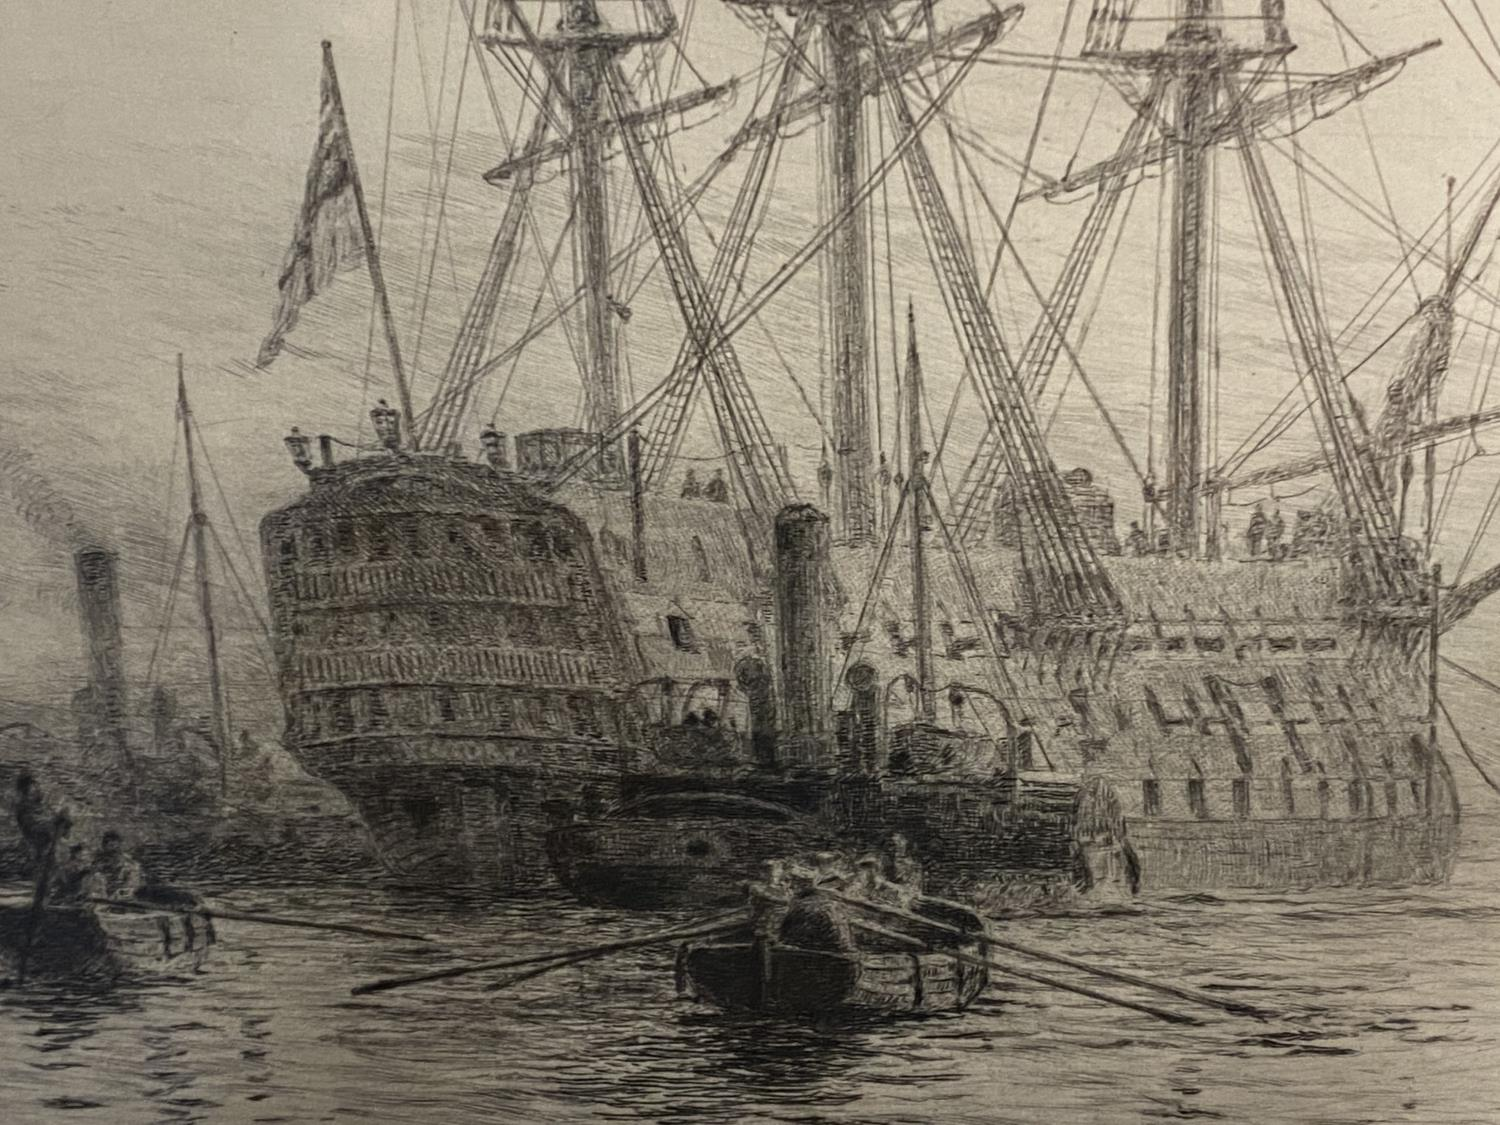 William Wylie, (1851-1931-), etching, Man of War with tugs in harbour, signed in pencil lower left - Image 2 of 12